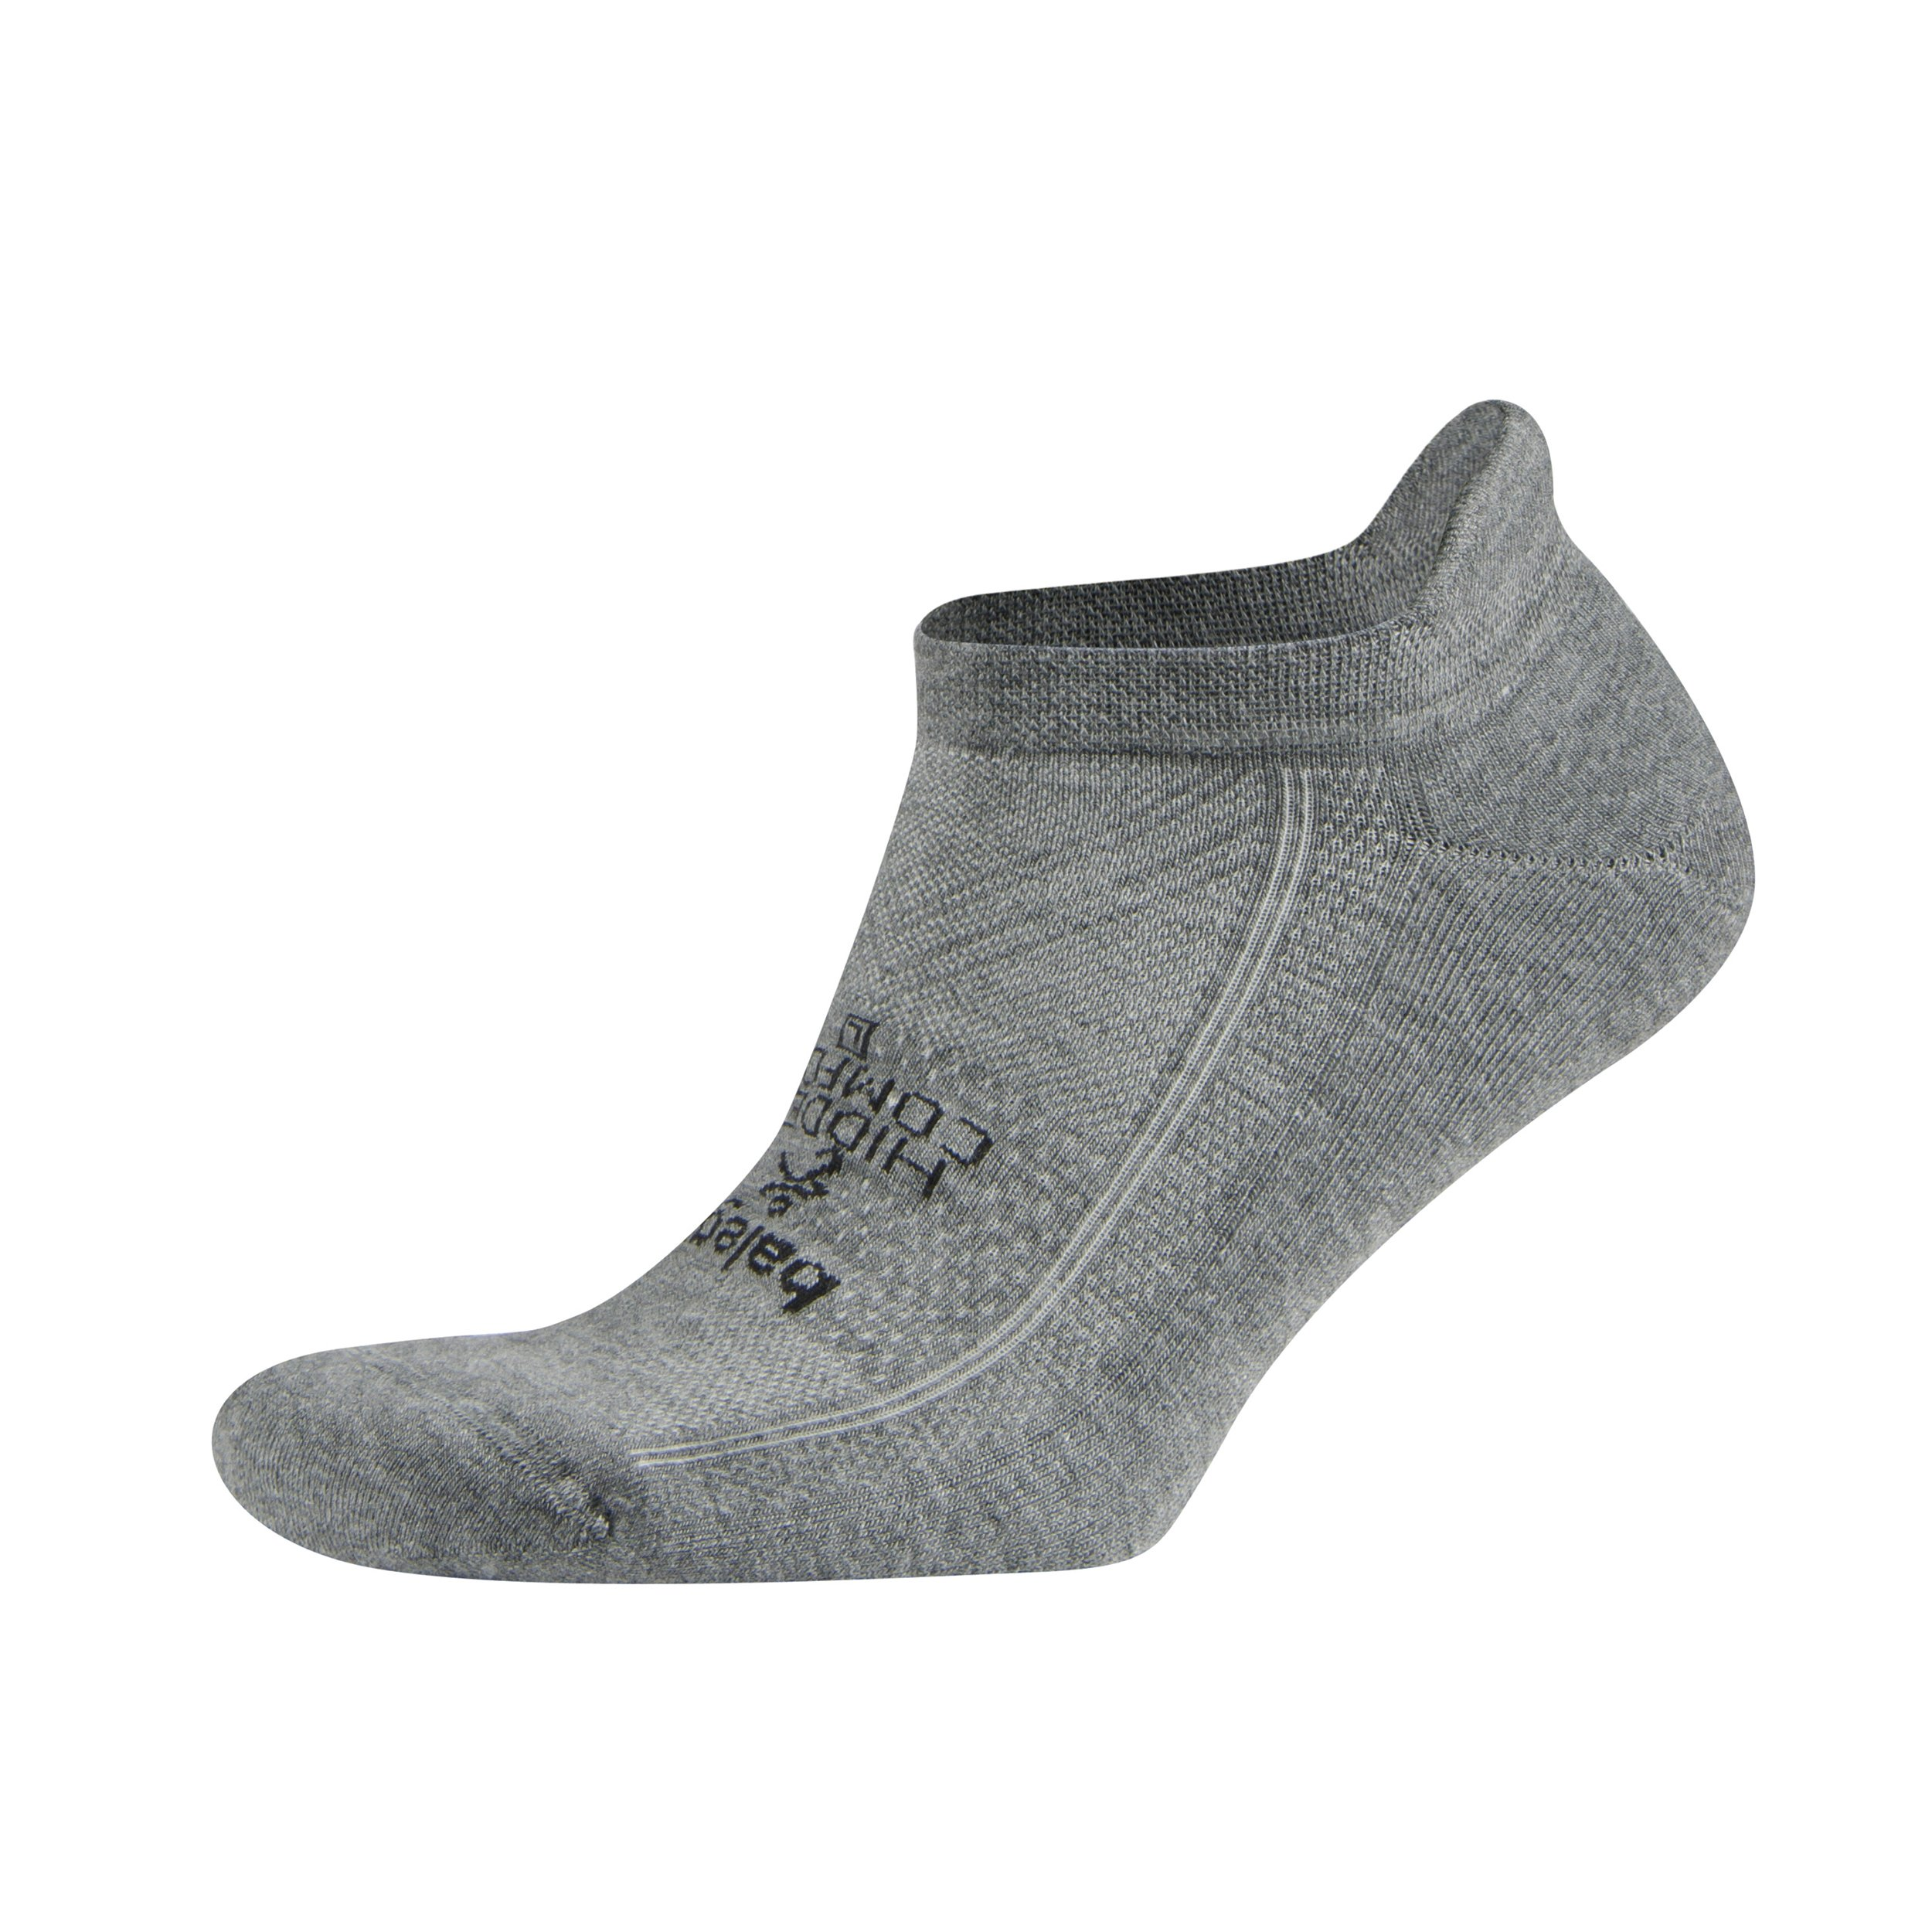 Balega Hidden Comfort No-Show Running Socks for Men and Women (1 Pair), Charcoal, X-Large by Balega